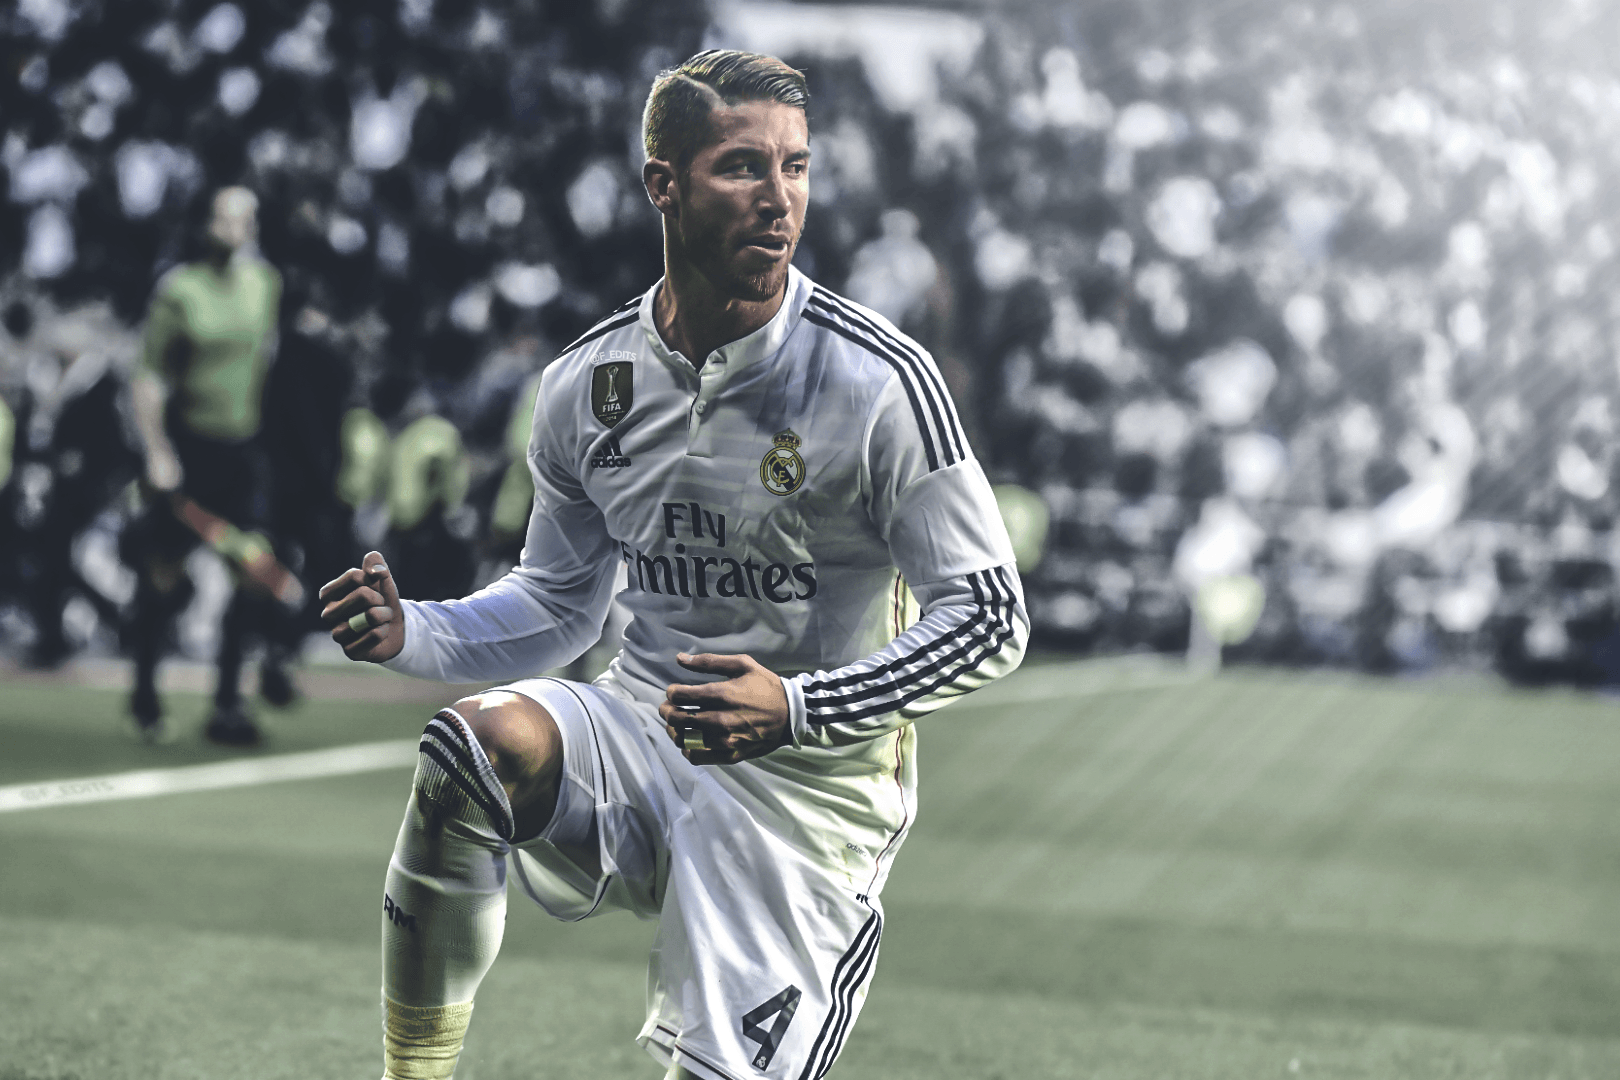 Sergio Ramos Wallpapers HD Wallpaper